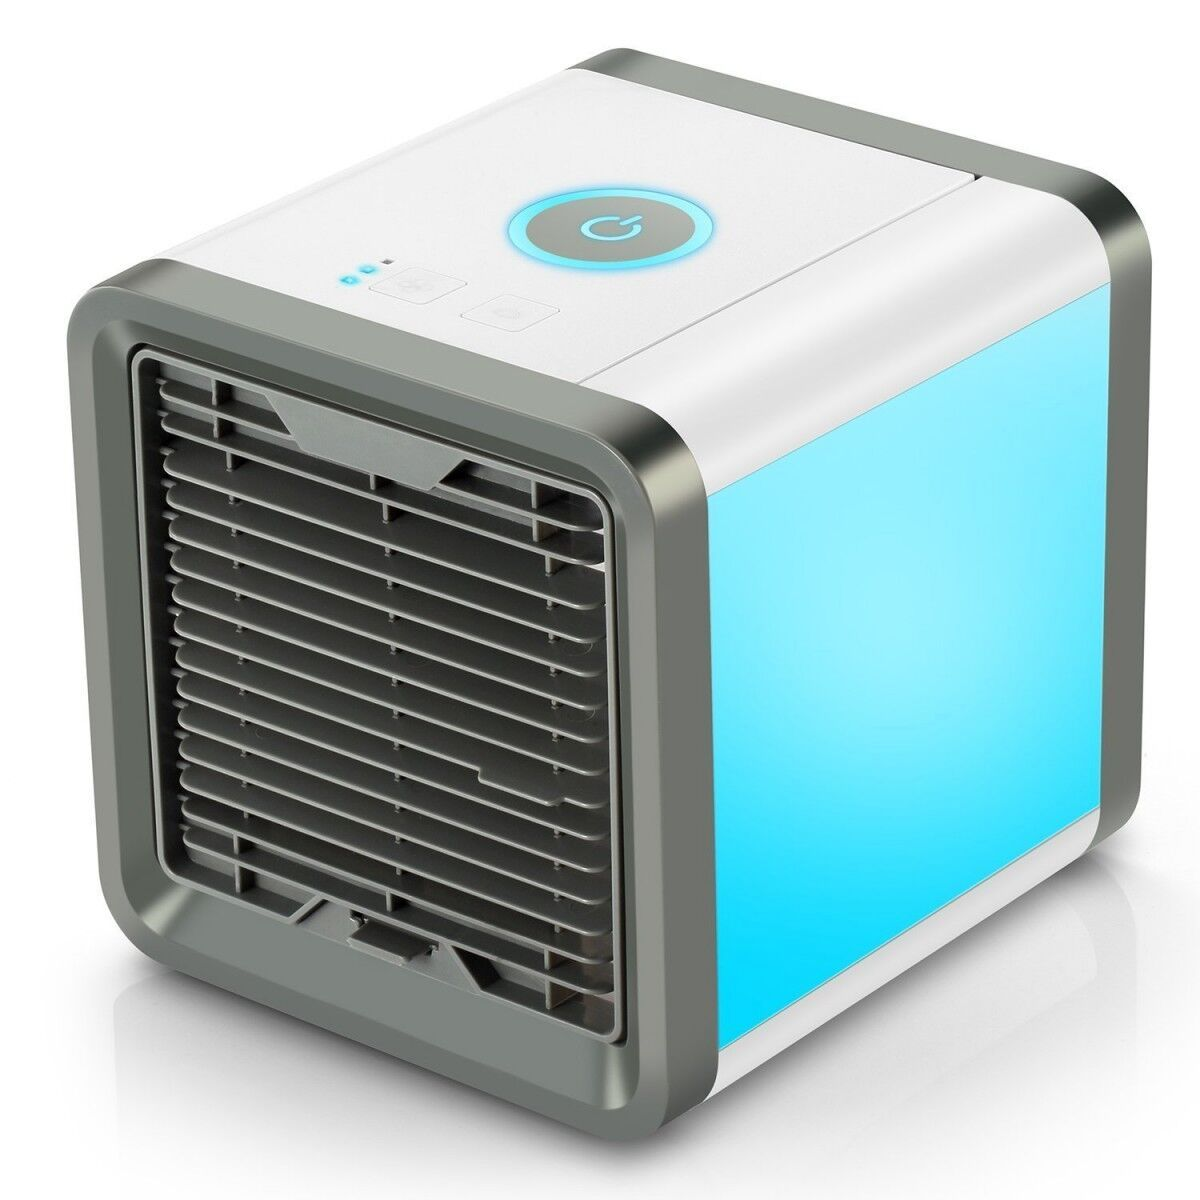 CoolAir compact and portable air conditioning unit